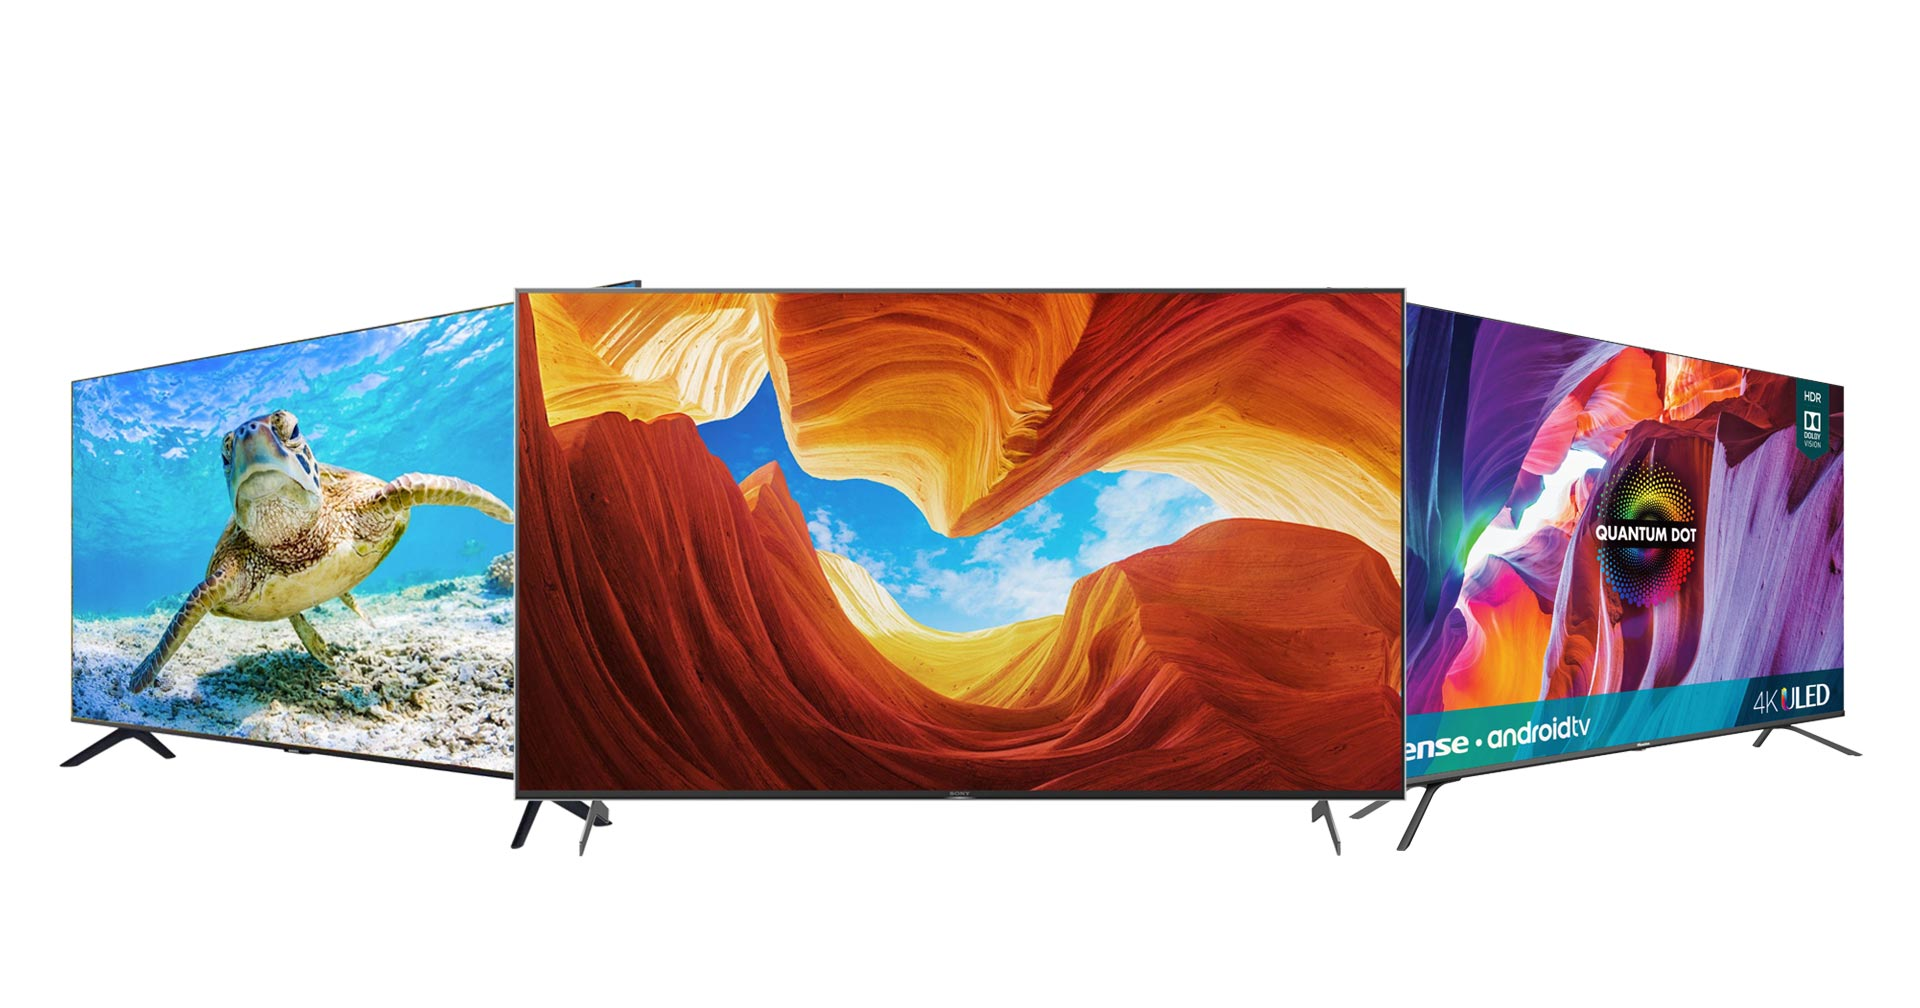 The Best 4K Budget Gaming Tvs